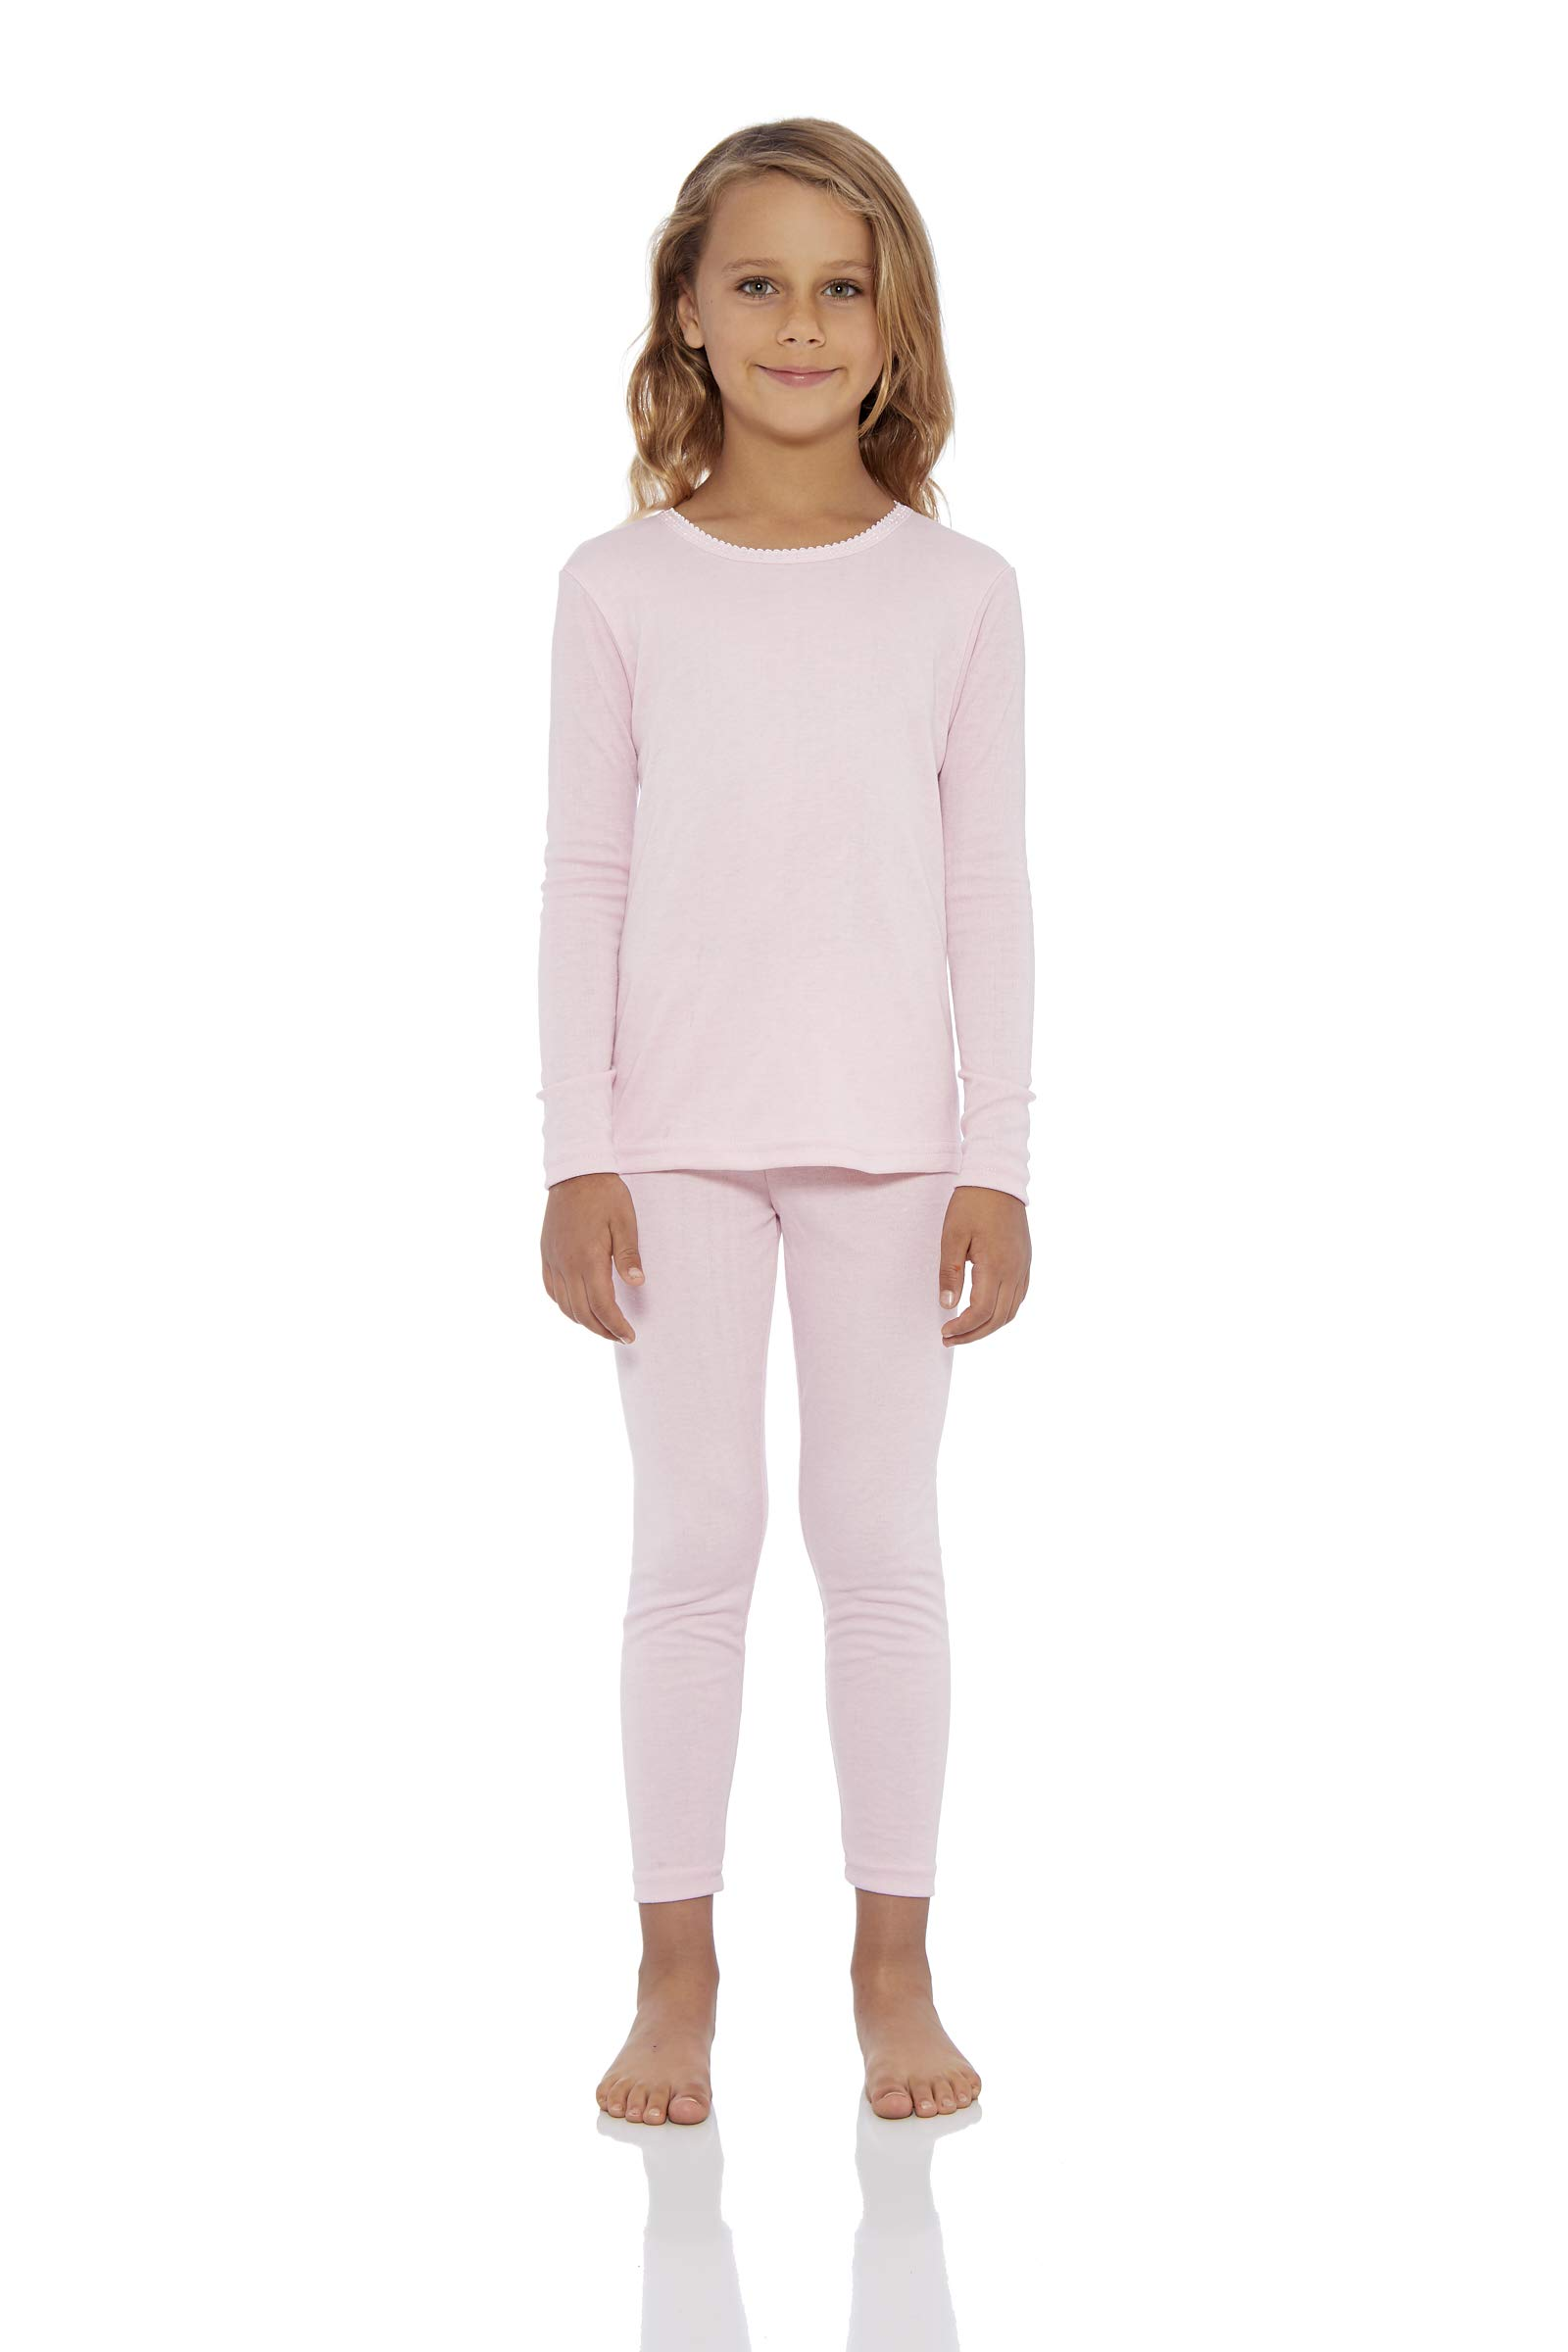 Rocky Girl's Smooth Knit Thermal Underwear 2PC Set Long John Top and Bottom Pajamas (Pink, XS) by Rocky